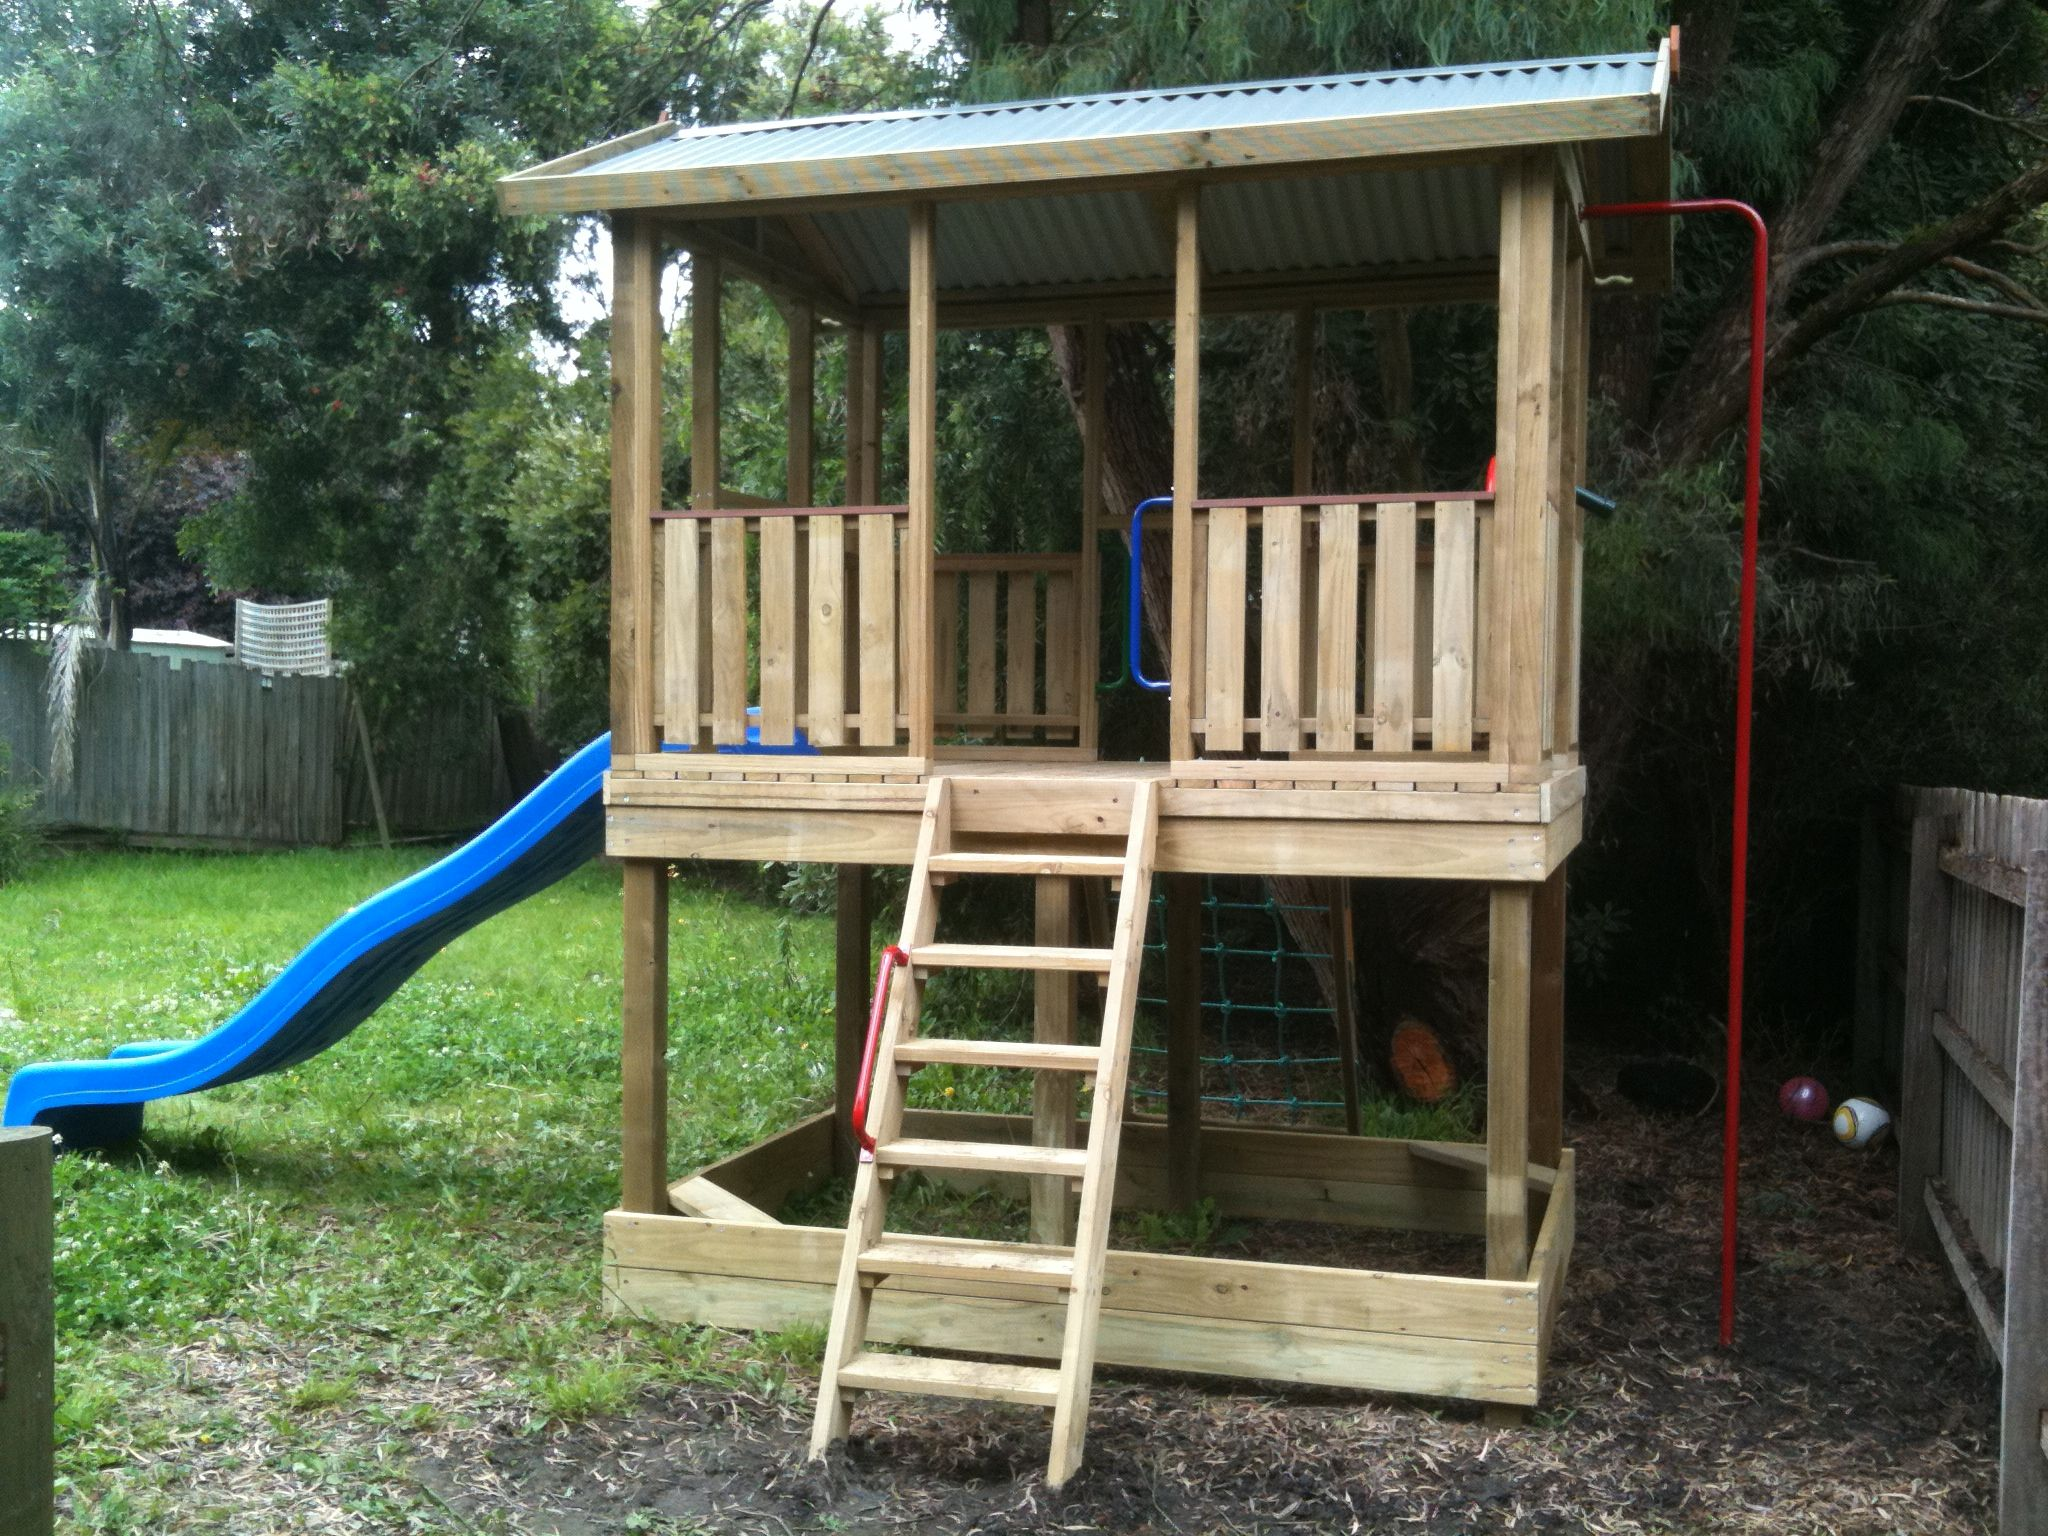 cubby houses by matt u0027s homes and outdoor designs located